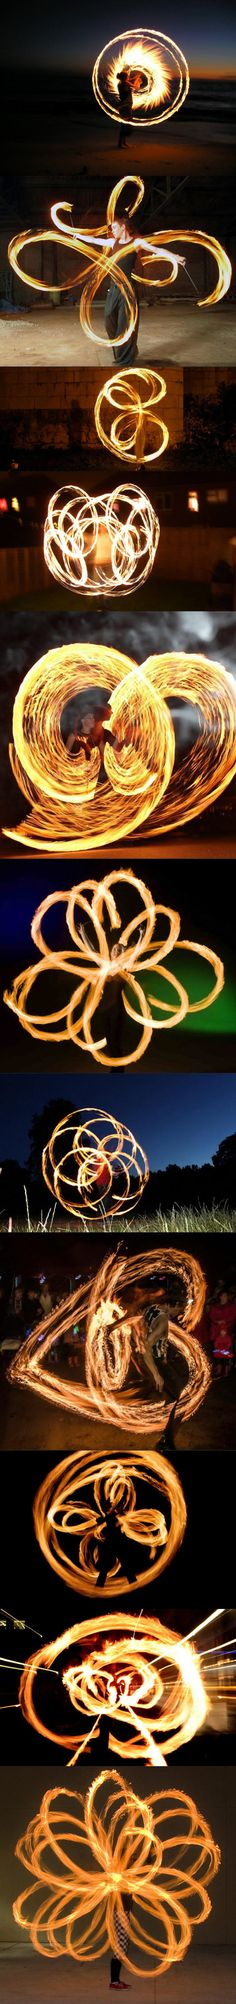 This is what it looks like when you juggle with fire and take long-exposure photos.